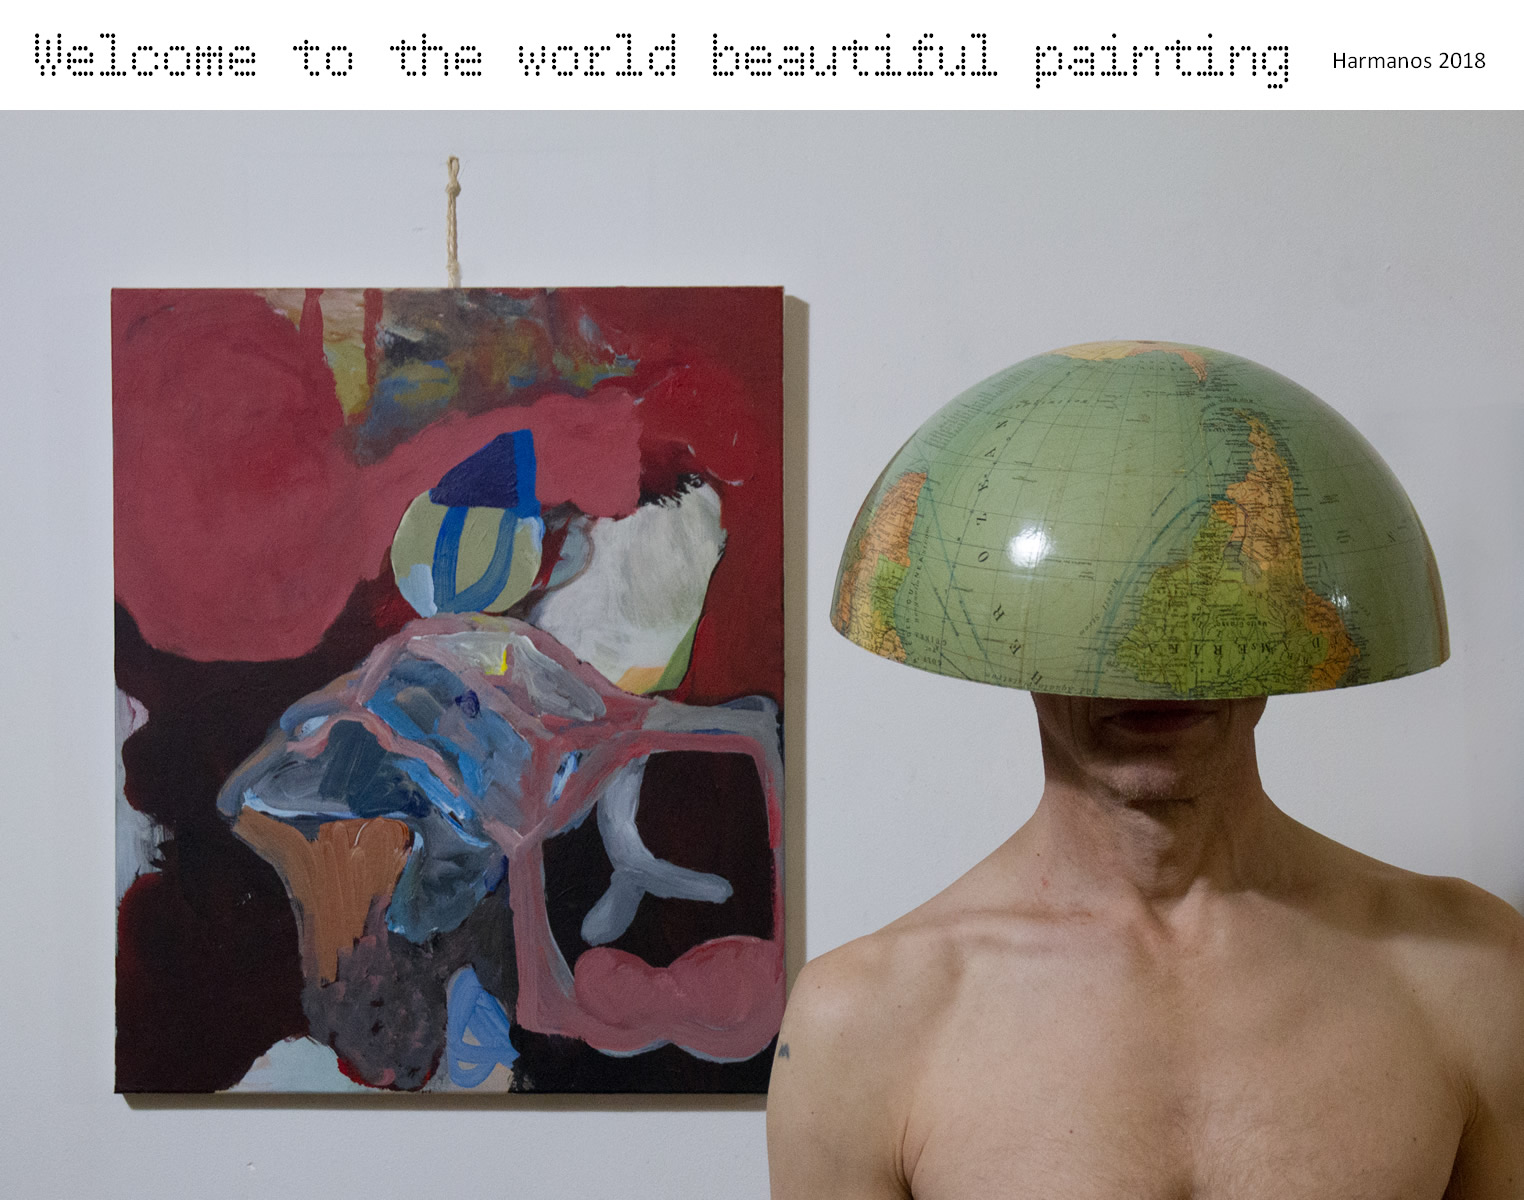 Welcome to the world beautiful painting (Harmanos 2018)